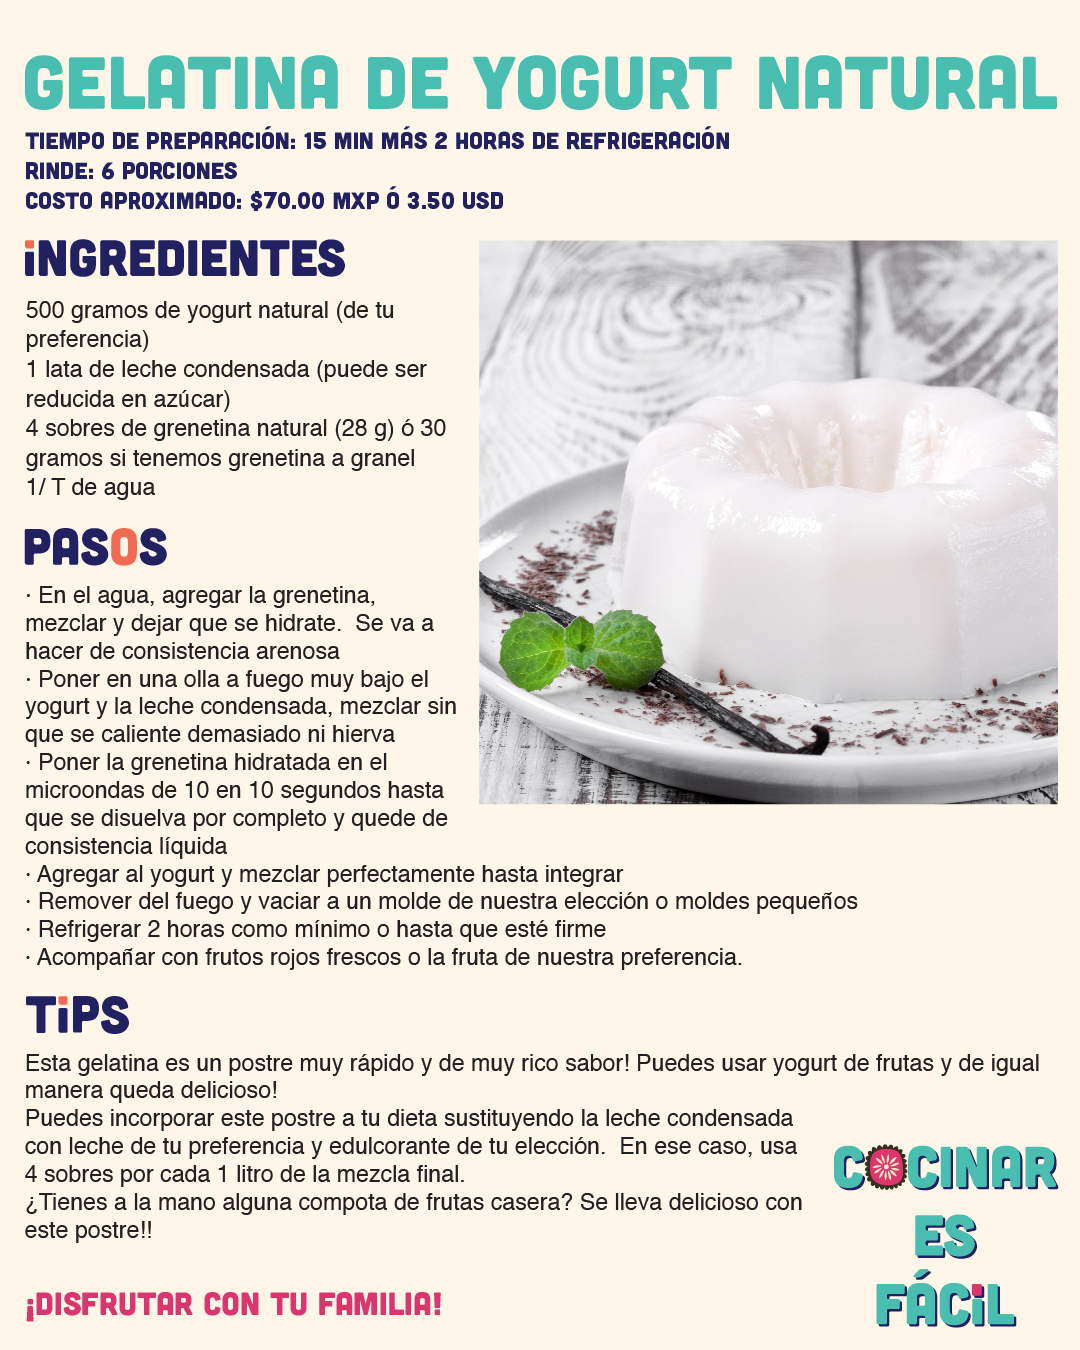 Gelatina de Yogurt Natural